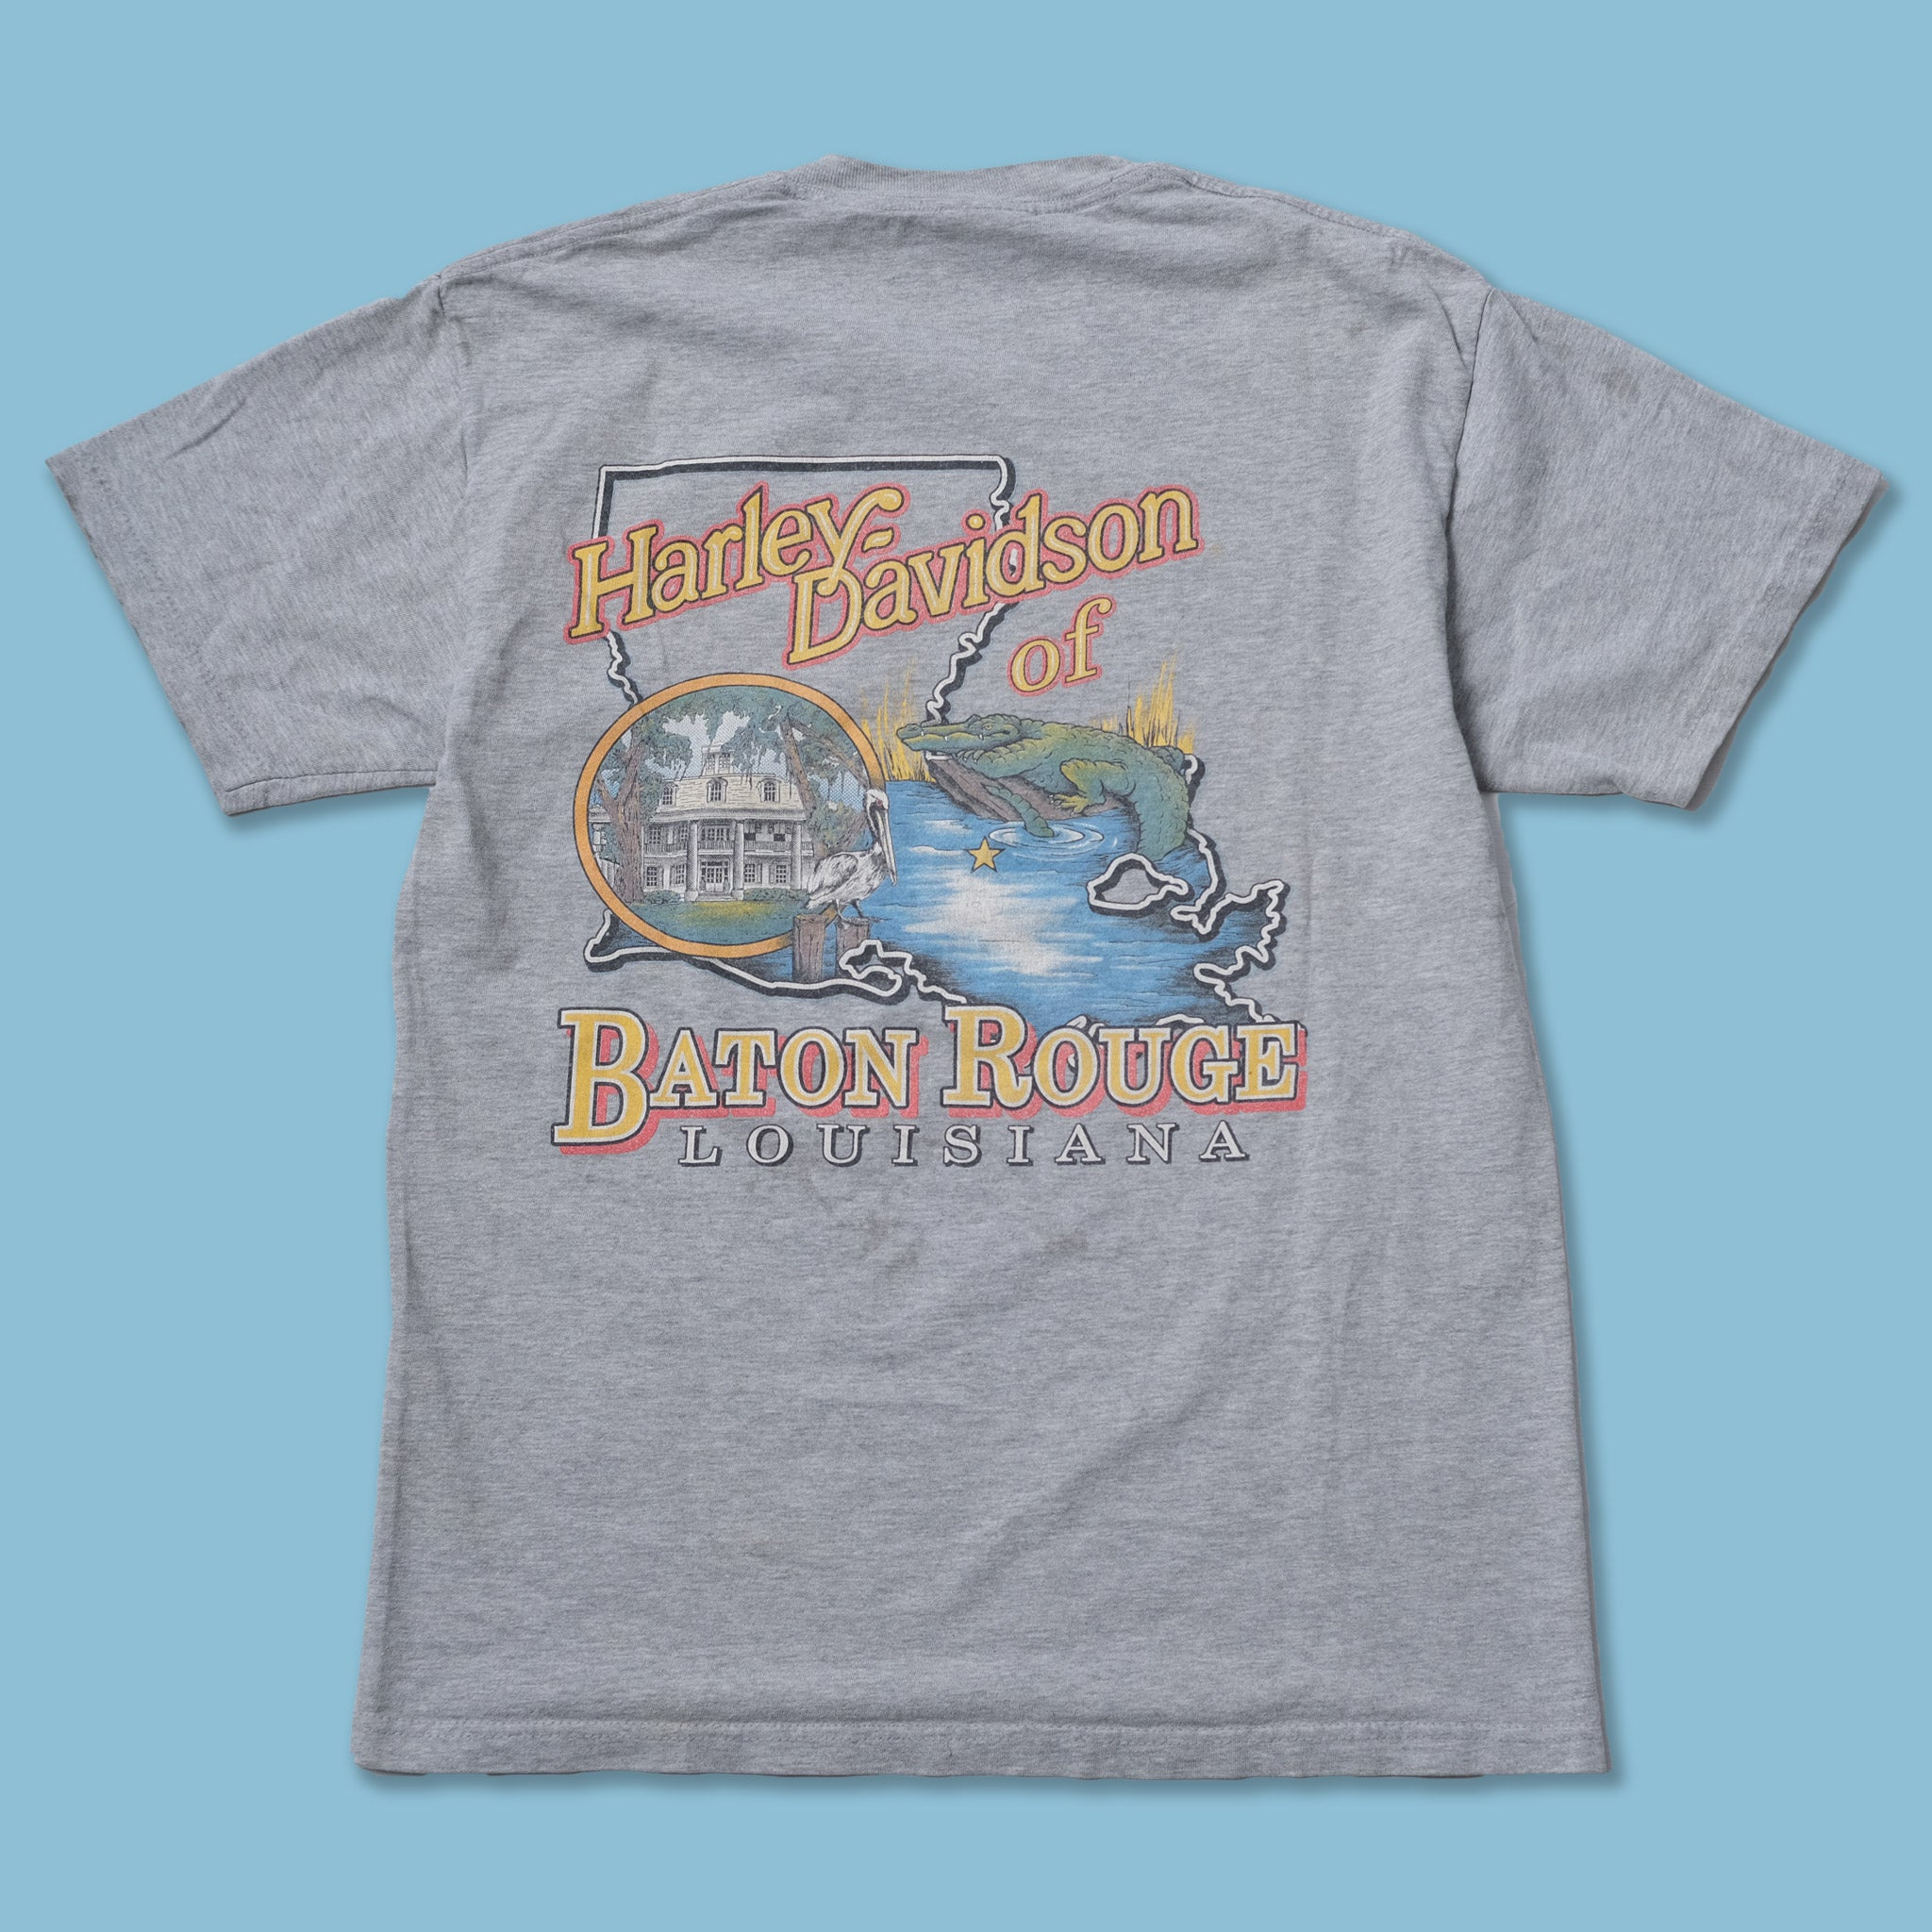 Harley Davidson Louisiana T-Shirt Medium